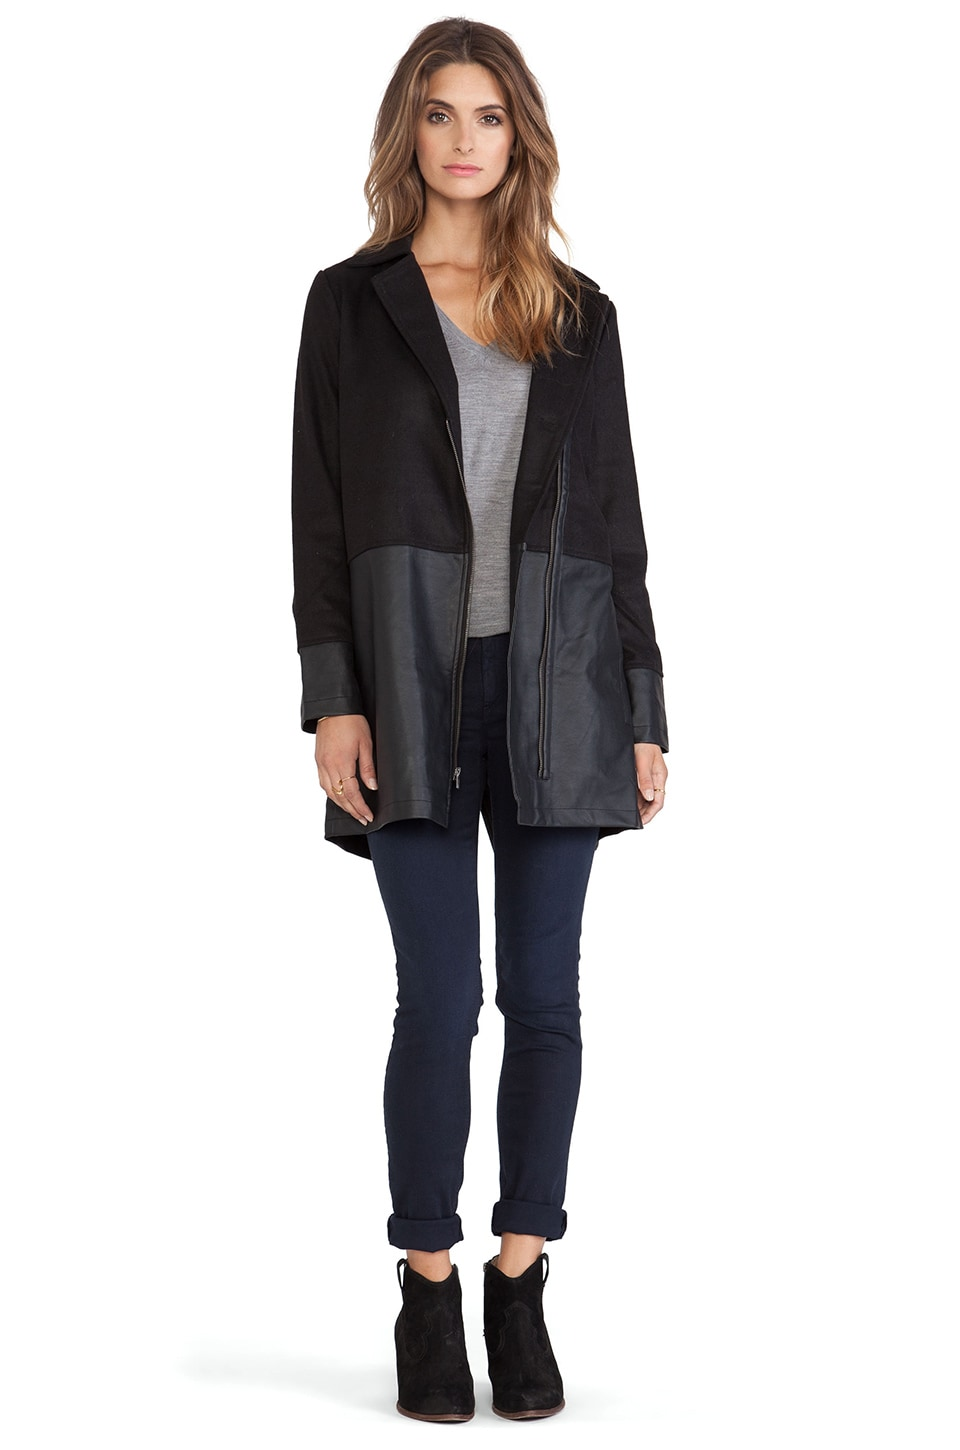 BB Dakota Rory Over-sized Jacket in Black